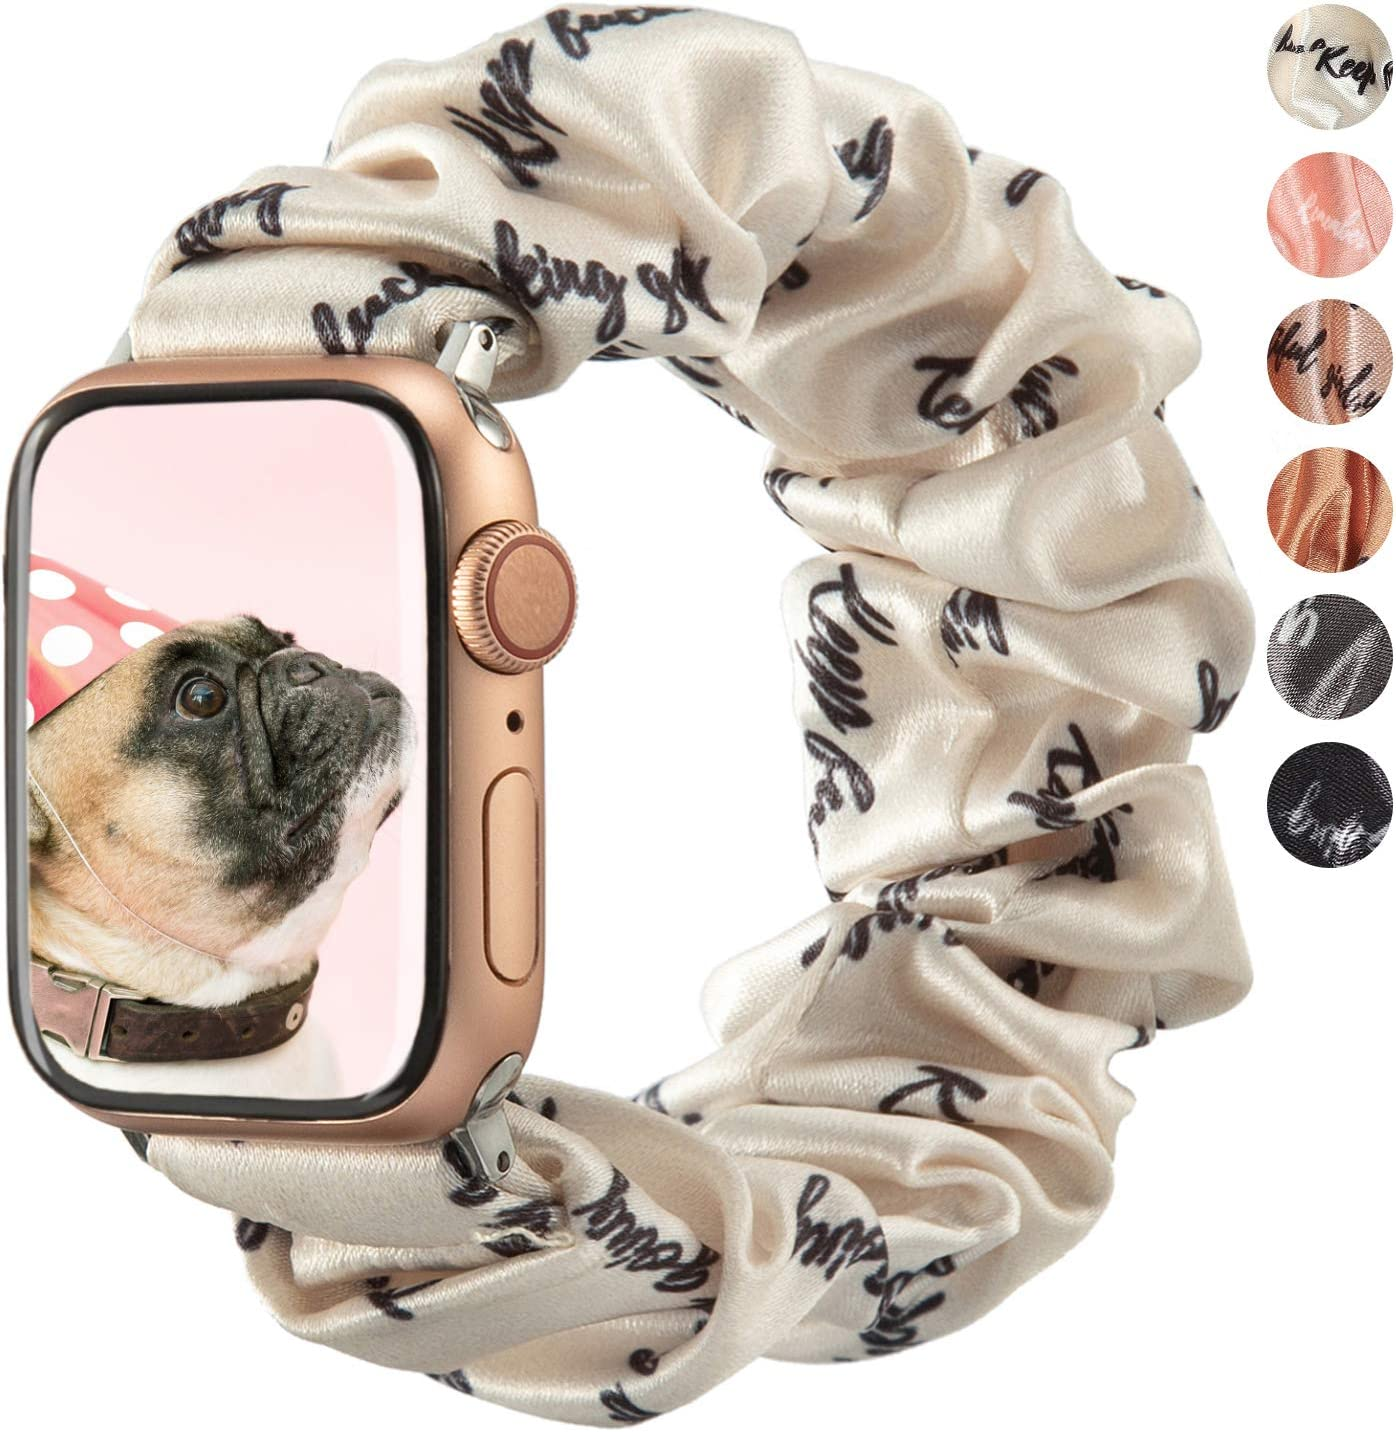 38mm Women iWatch Band # 4901 40mm iWatch Band- Size 6 34 inches